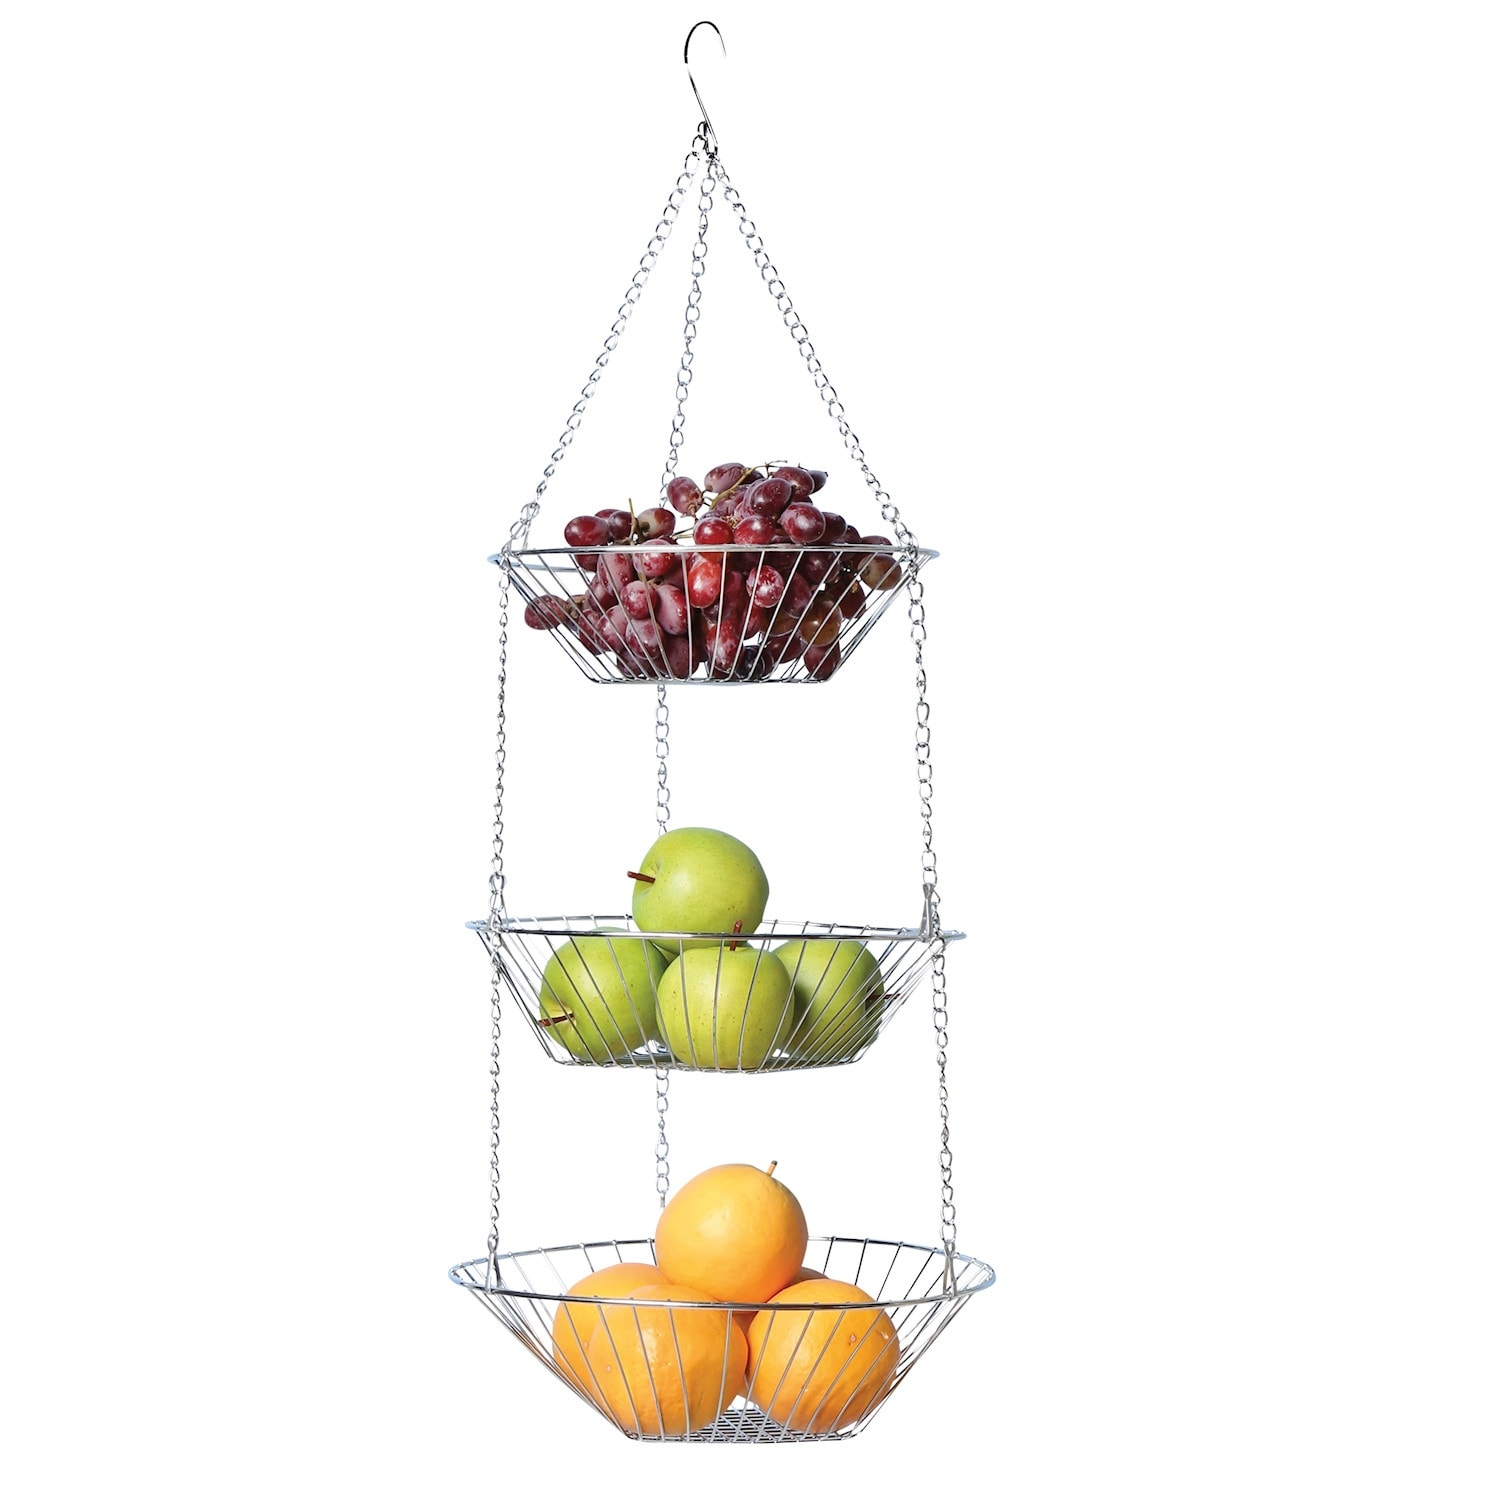 Home District Hanging Fruit Baskets 3 Tiered Adjule Chrome Wire Produce Storage Bowl Holders Hang From Ceiling Metal